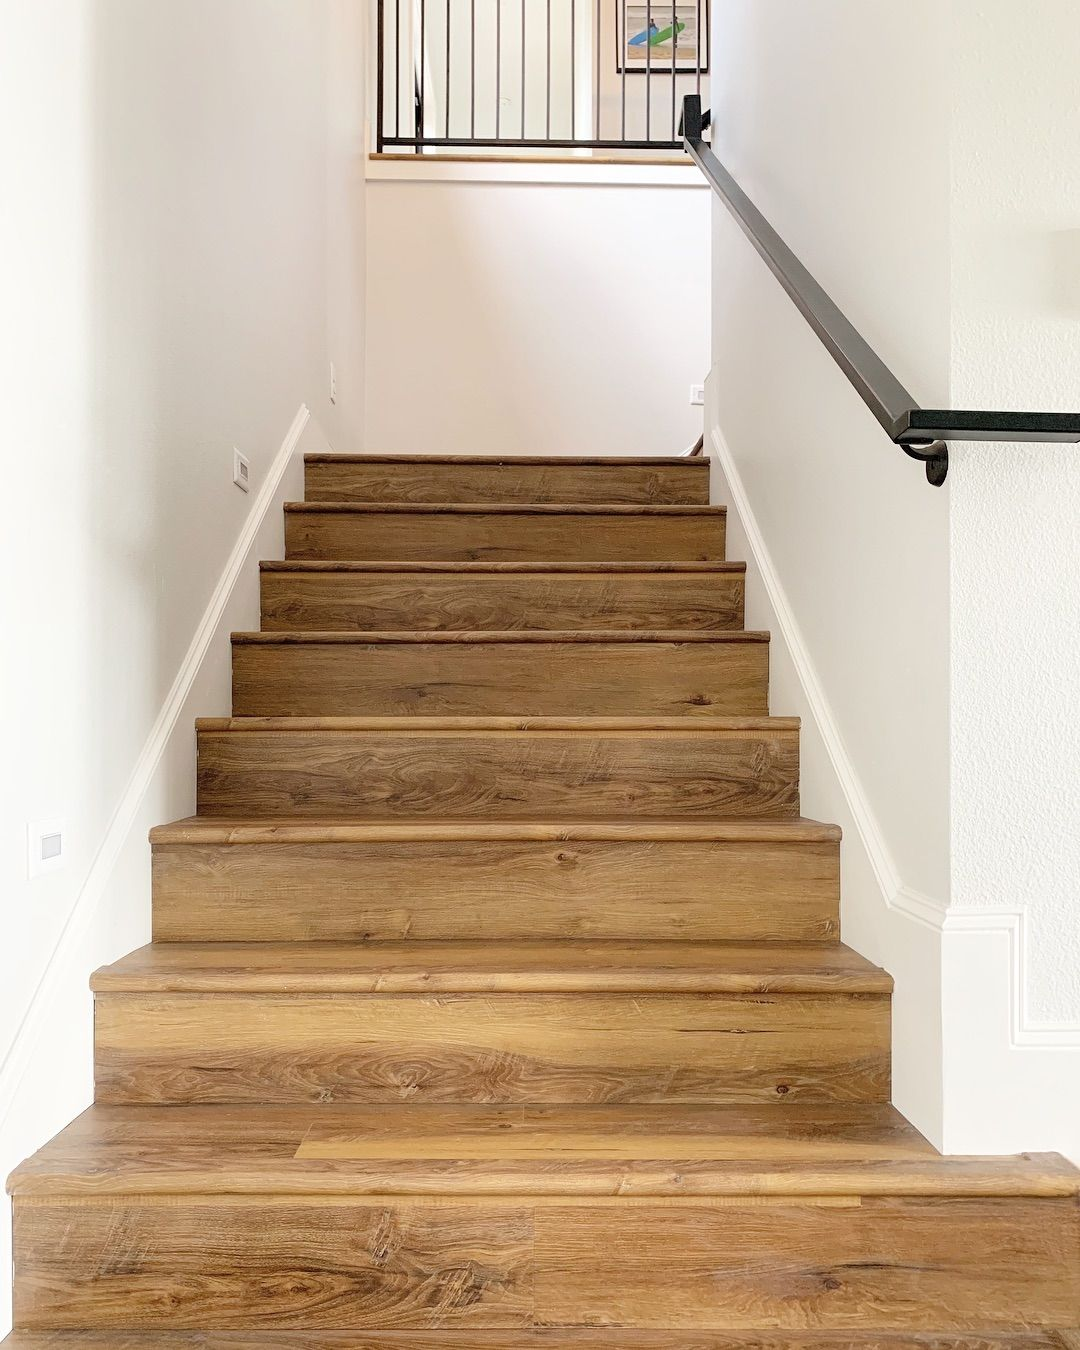 Great Things Await With Floors And Stairnoses That Look Like These